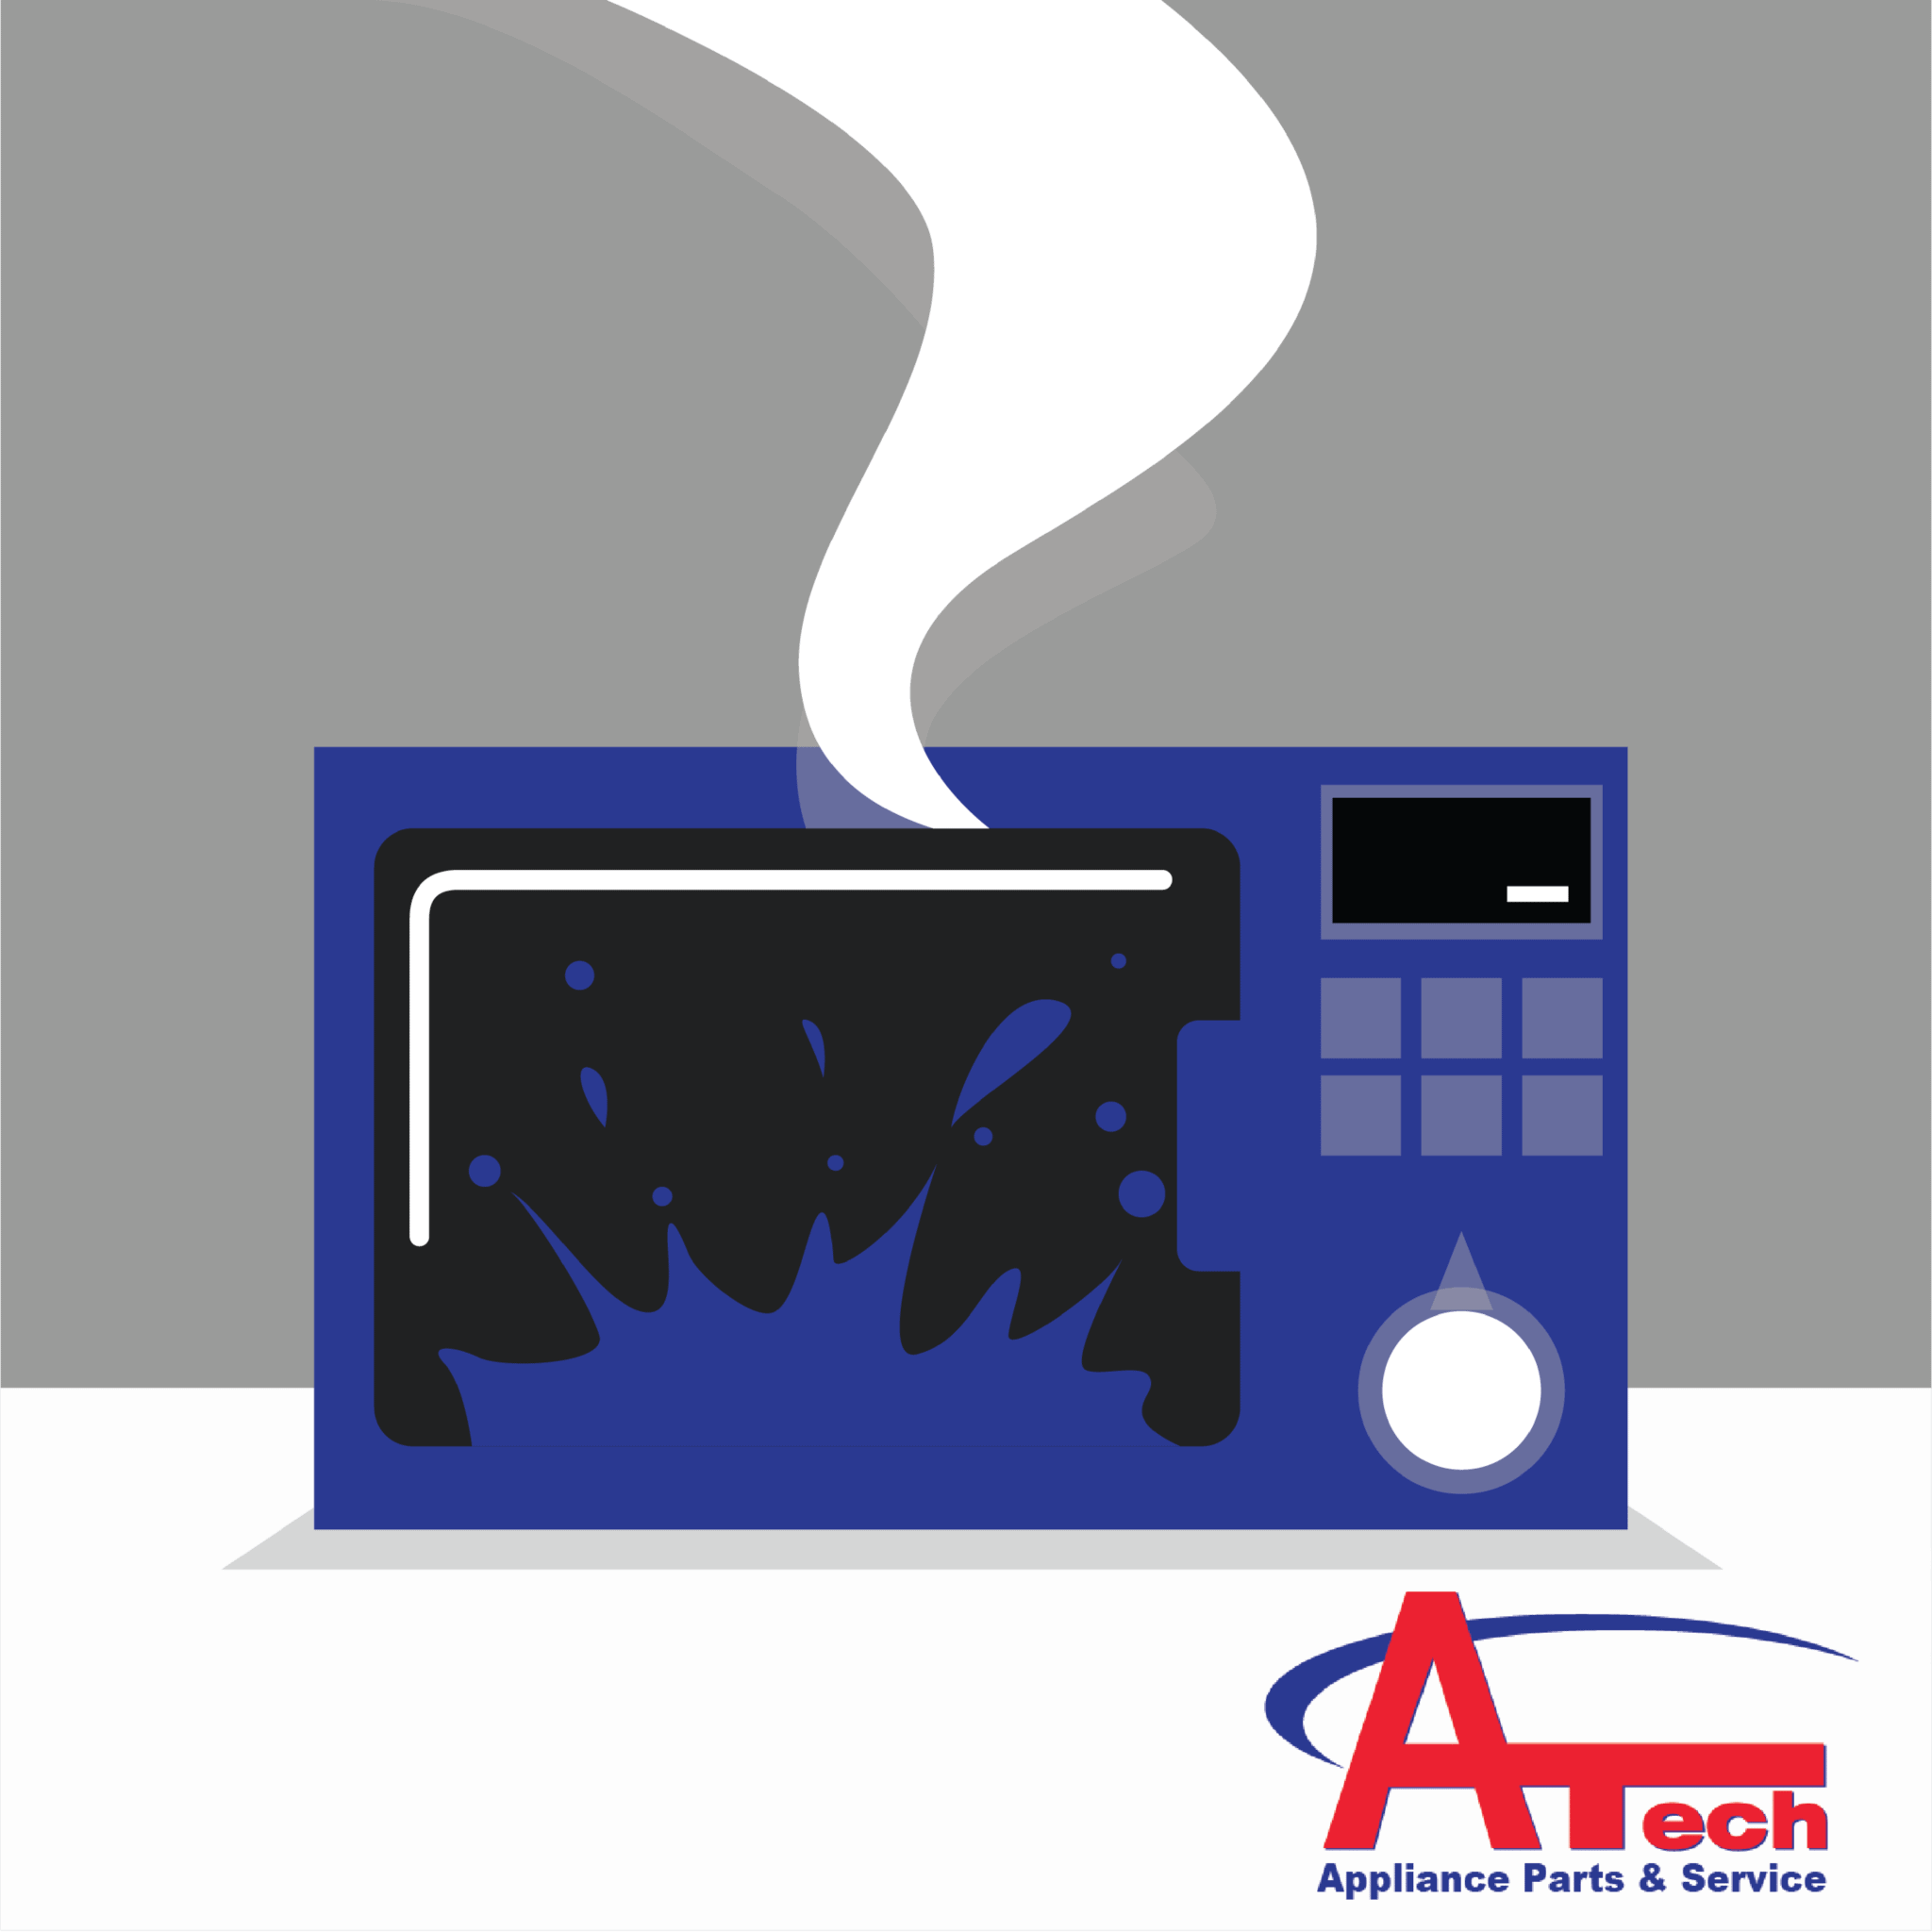 3 Reasons Why Your Microwave Could Have Stopped Working | A-Tech